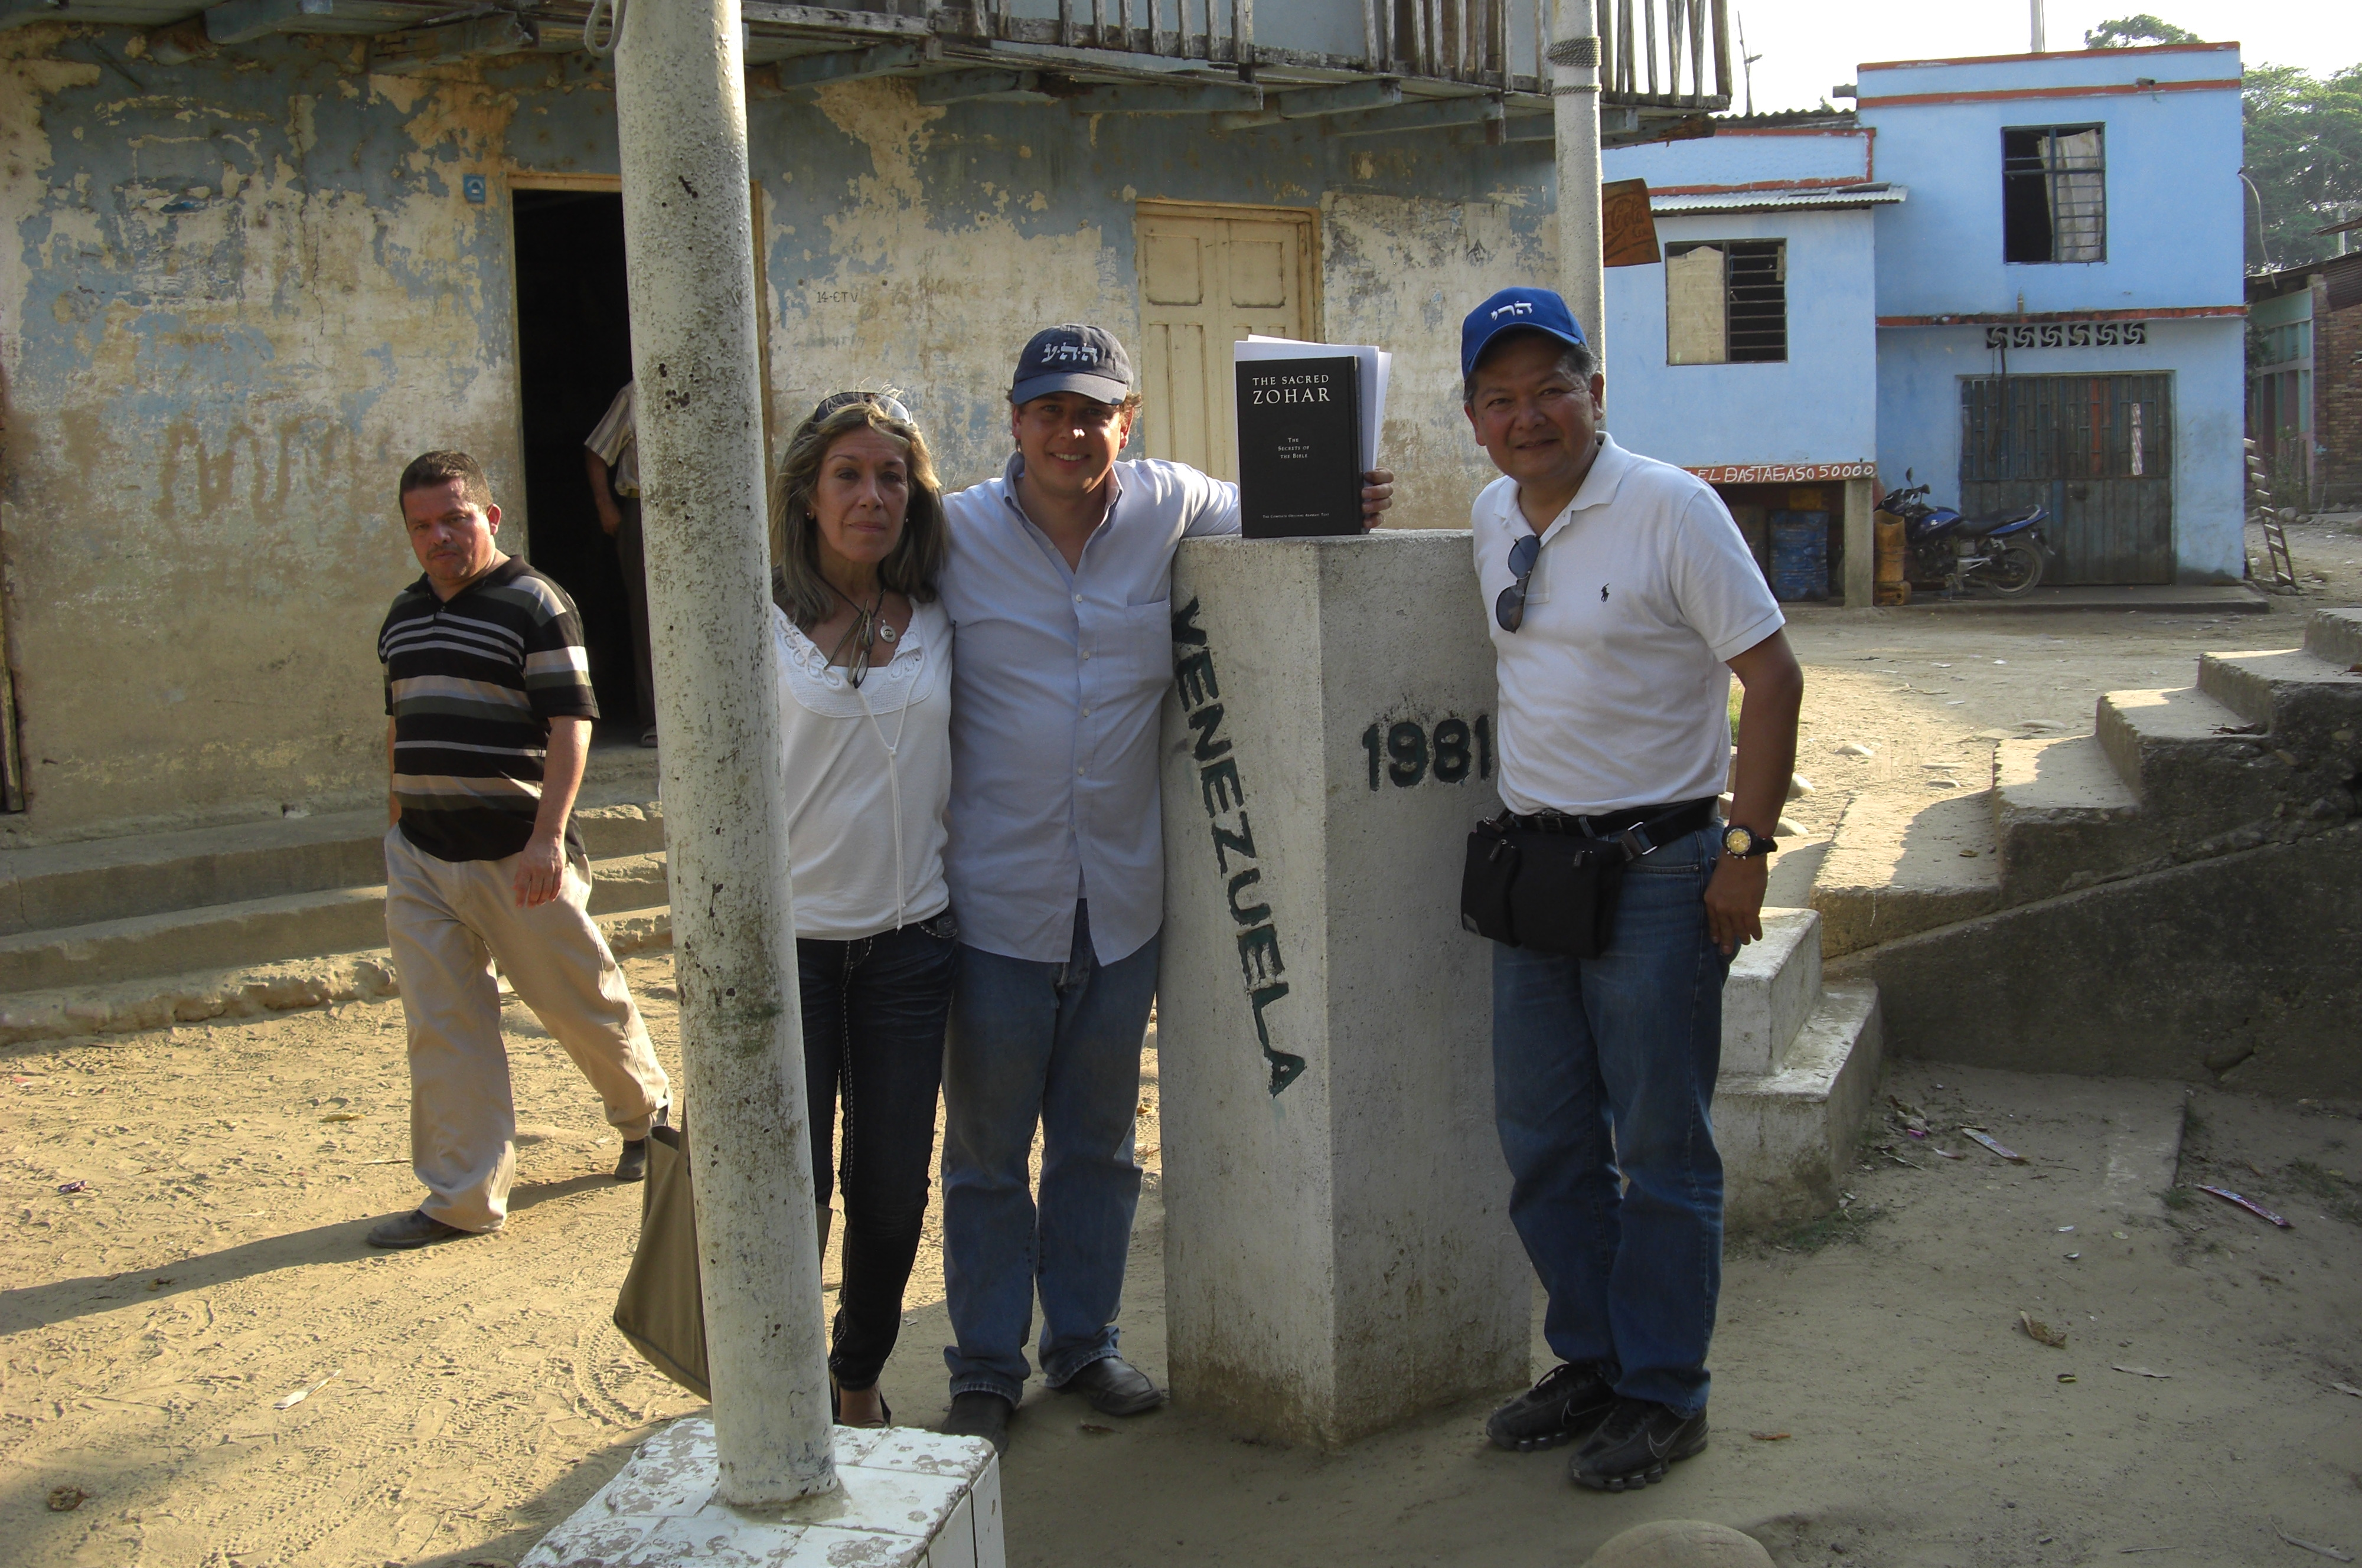 Kabbalah Centre volunteers pose near the Colombia/Venezuela border